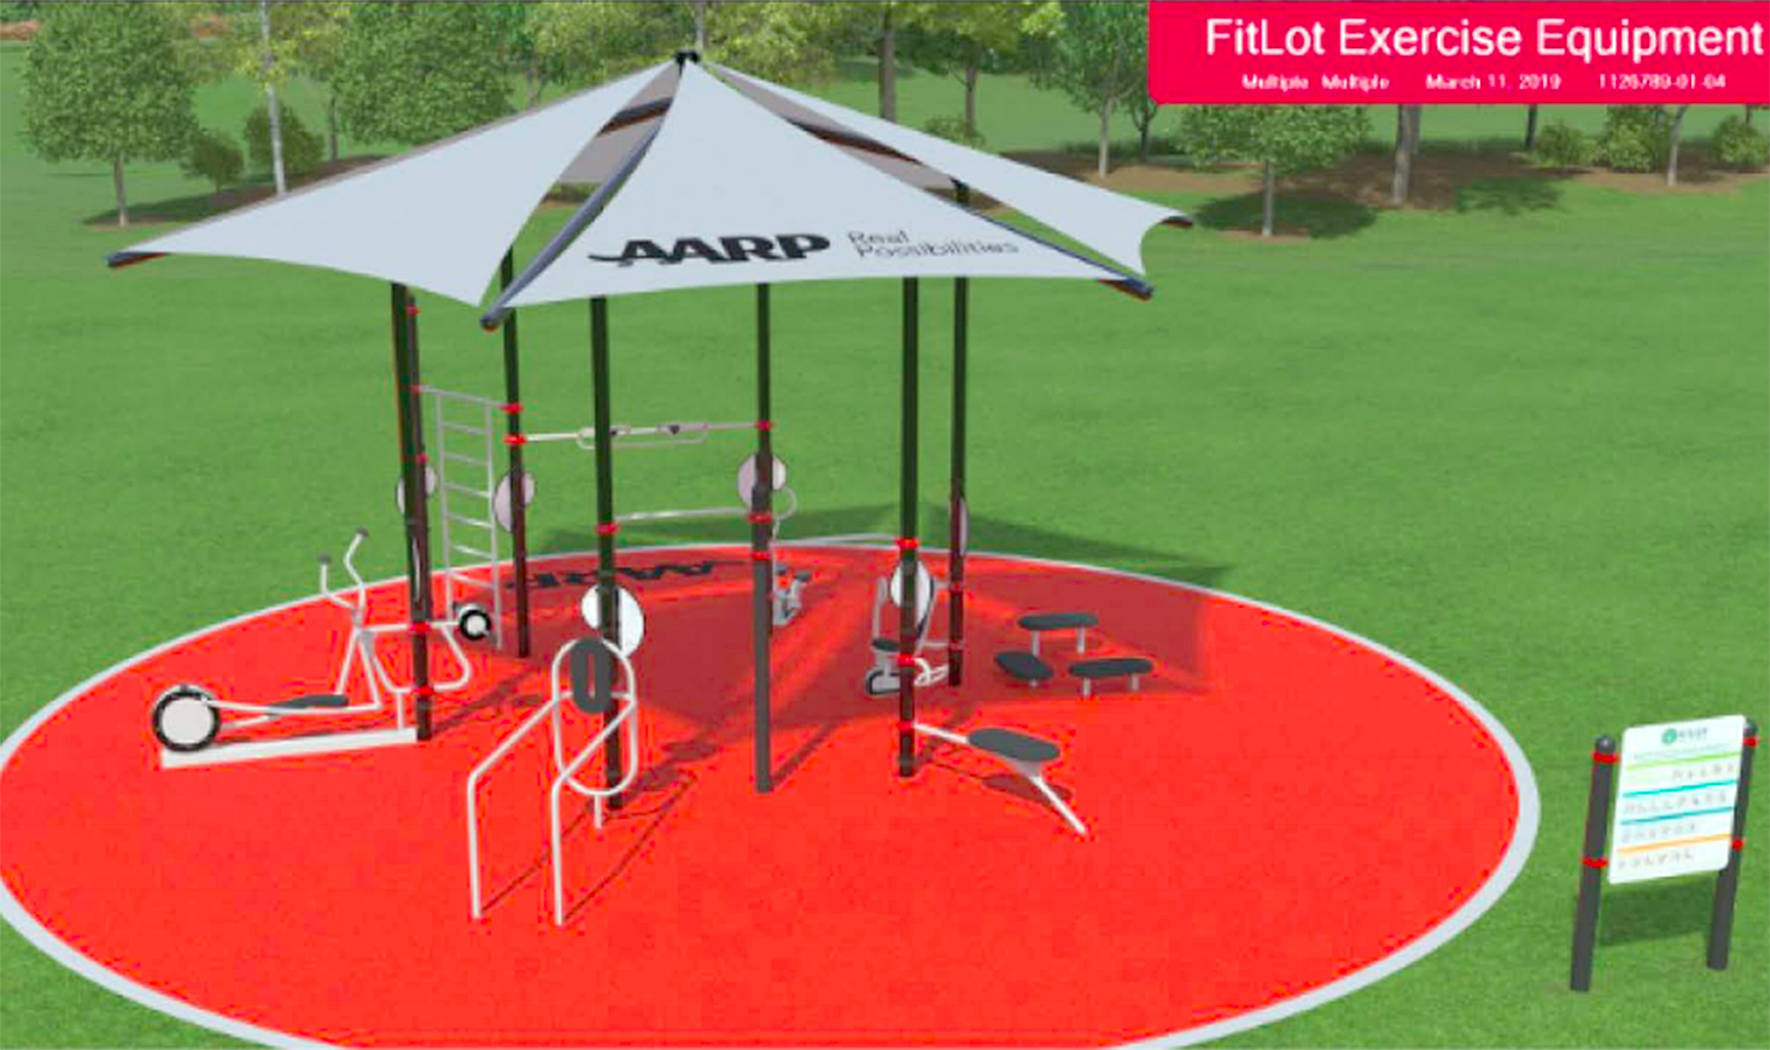 A design of the future Renton Fitlot park, funded by AARP. Photo courtesy of AARP.